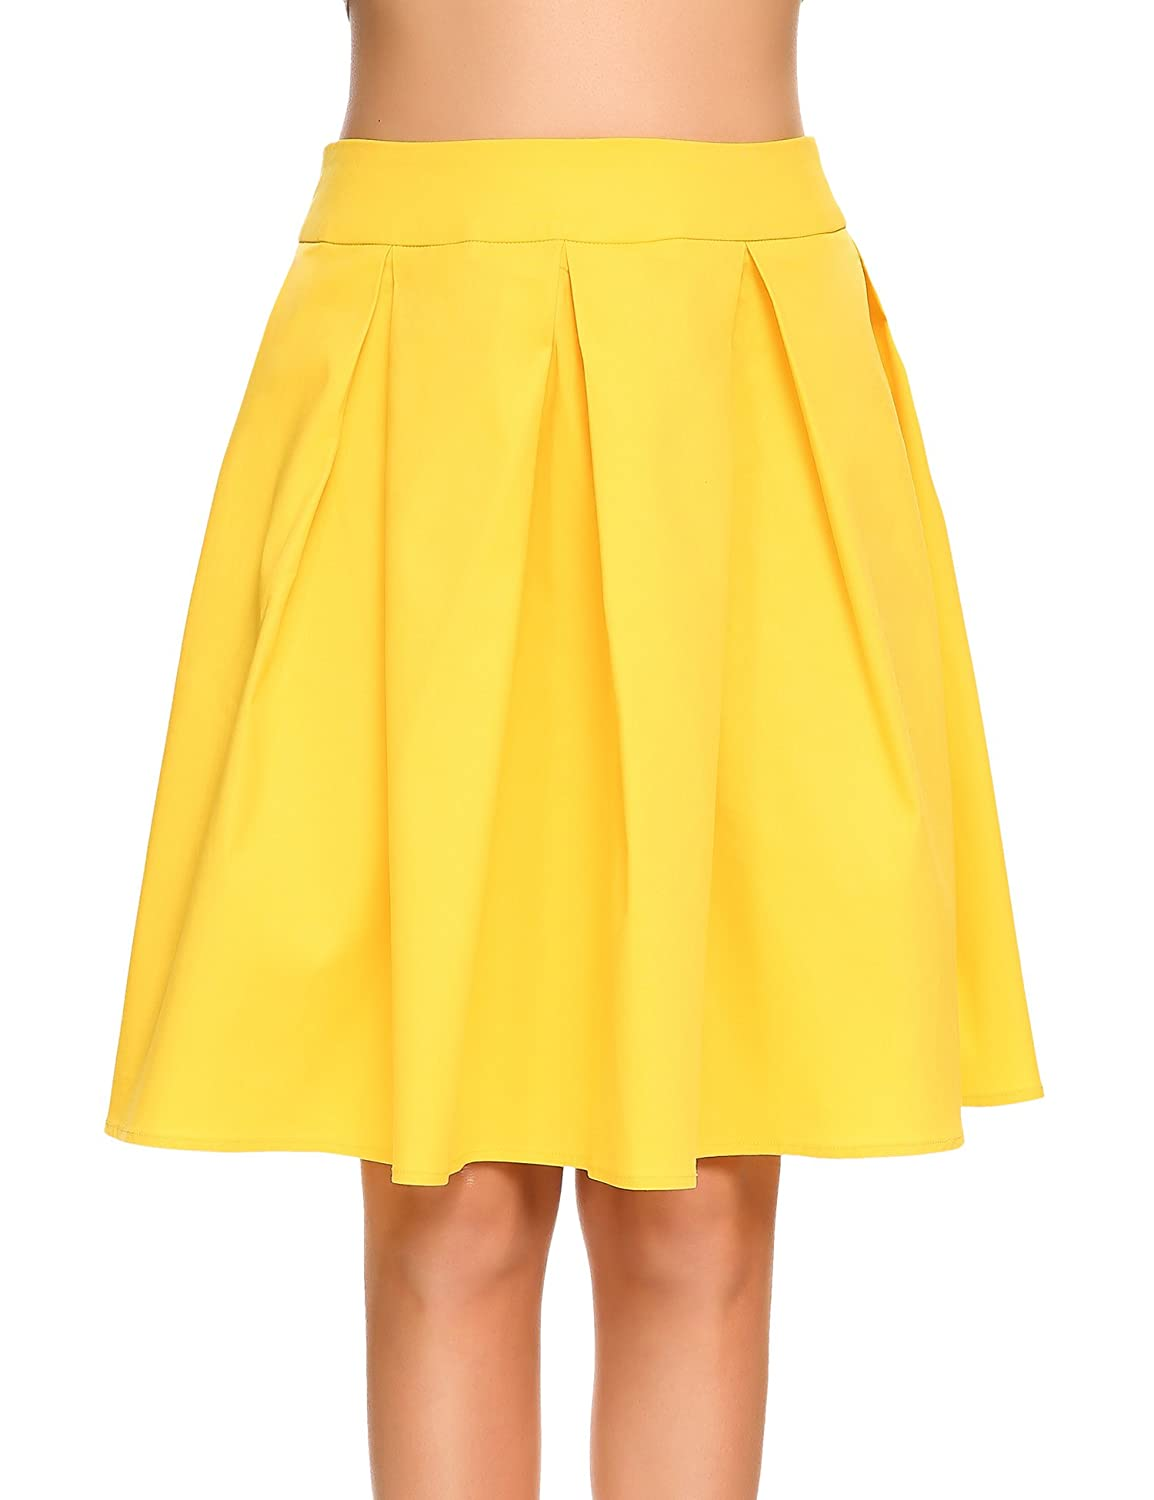 865143d1eb Shine Women Pleated Vintage High Waisted A line Skirts Skater Full Midi Skirt  Yellow at Amazon Women's Clothing store: